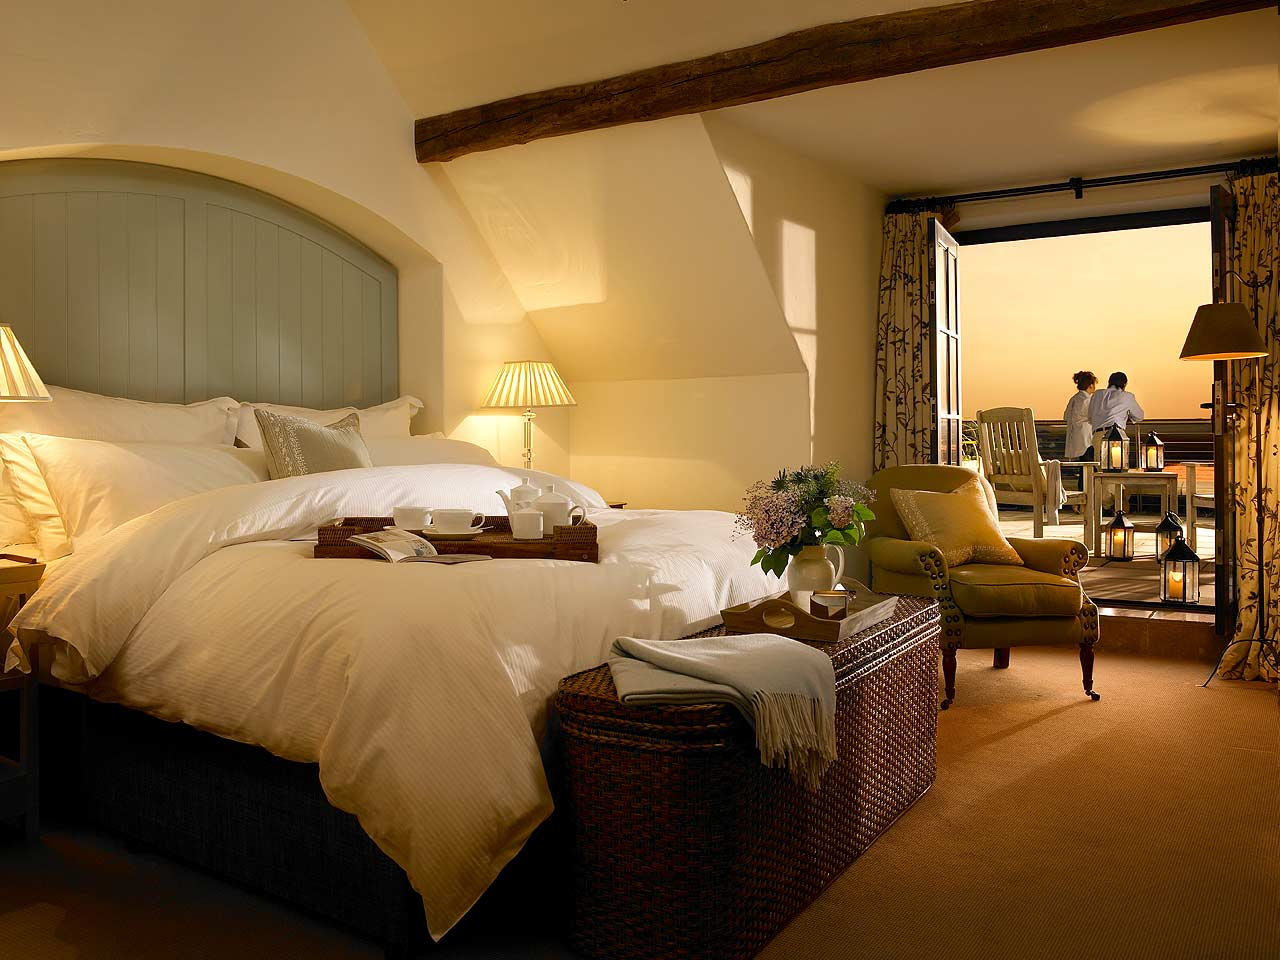 Lodge at doonbeg county clare ireland luxandtravel for Hotel luxury